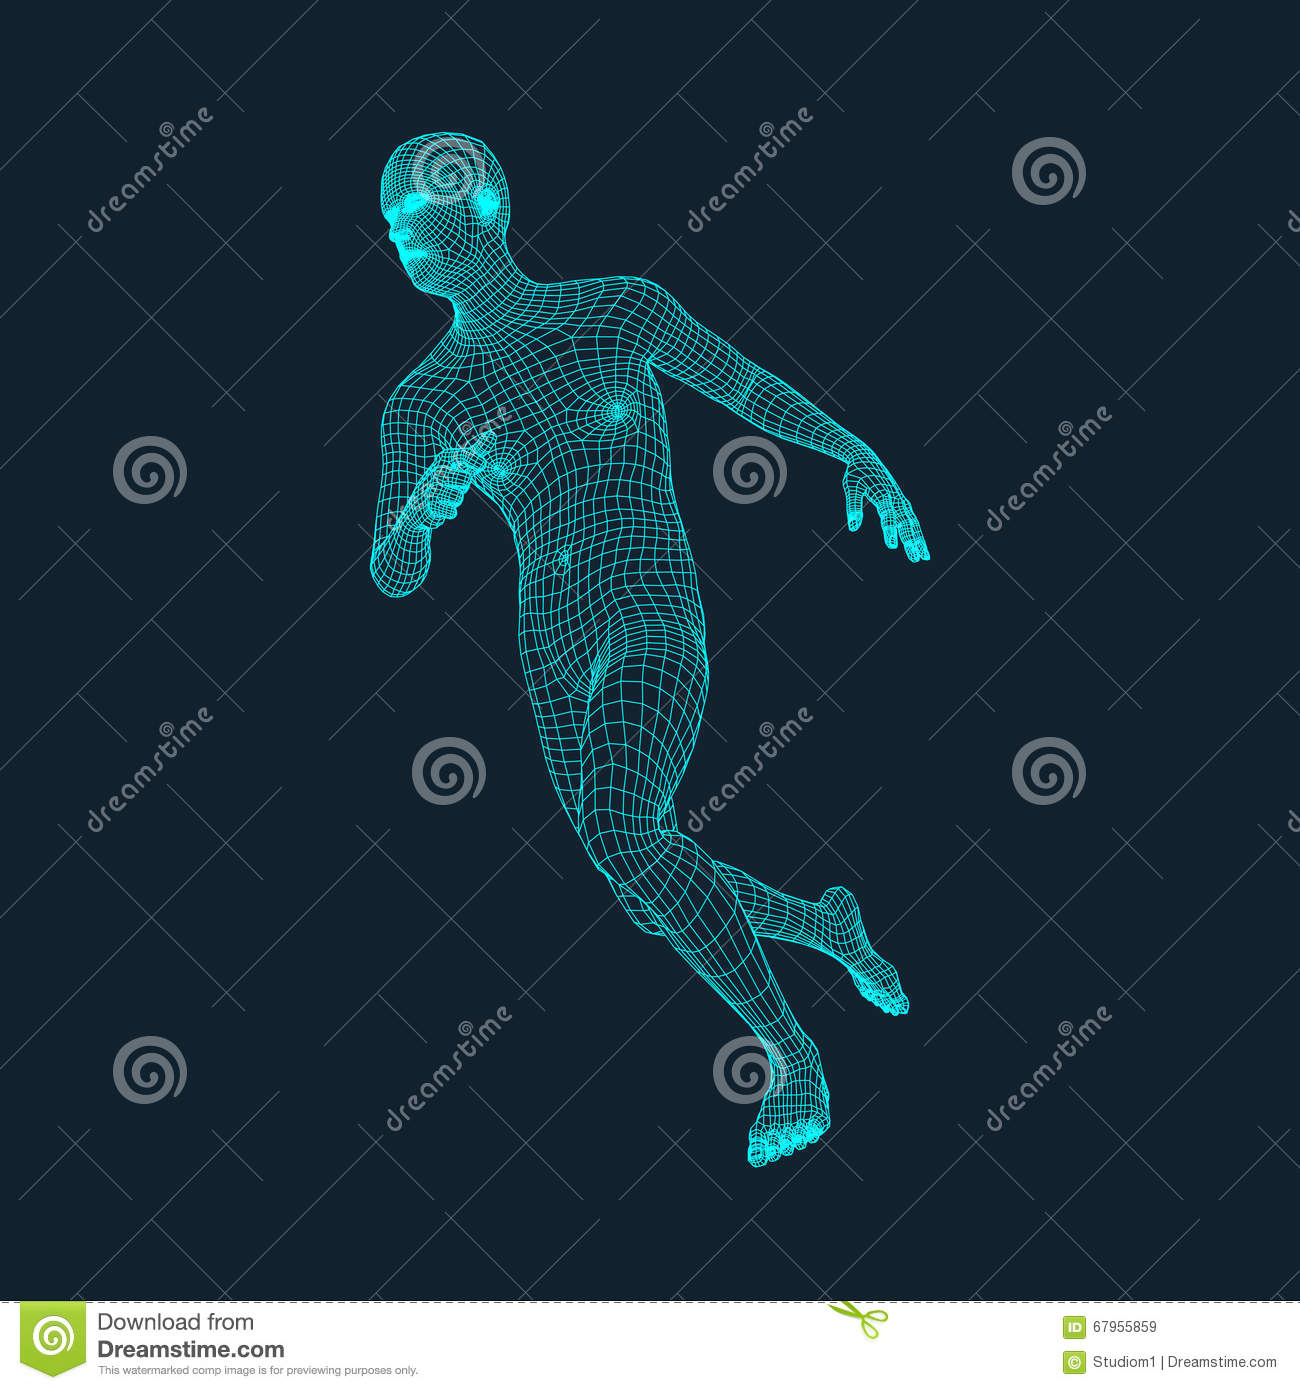 Running Man. Polygonal Design. 3D Model of Man. Geometric Design. Business, Science and Technology Vector Illustration.